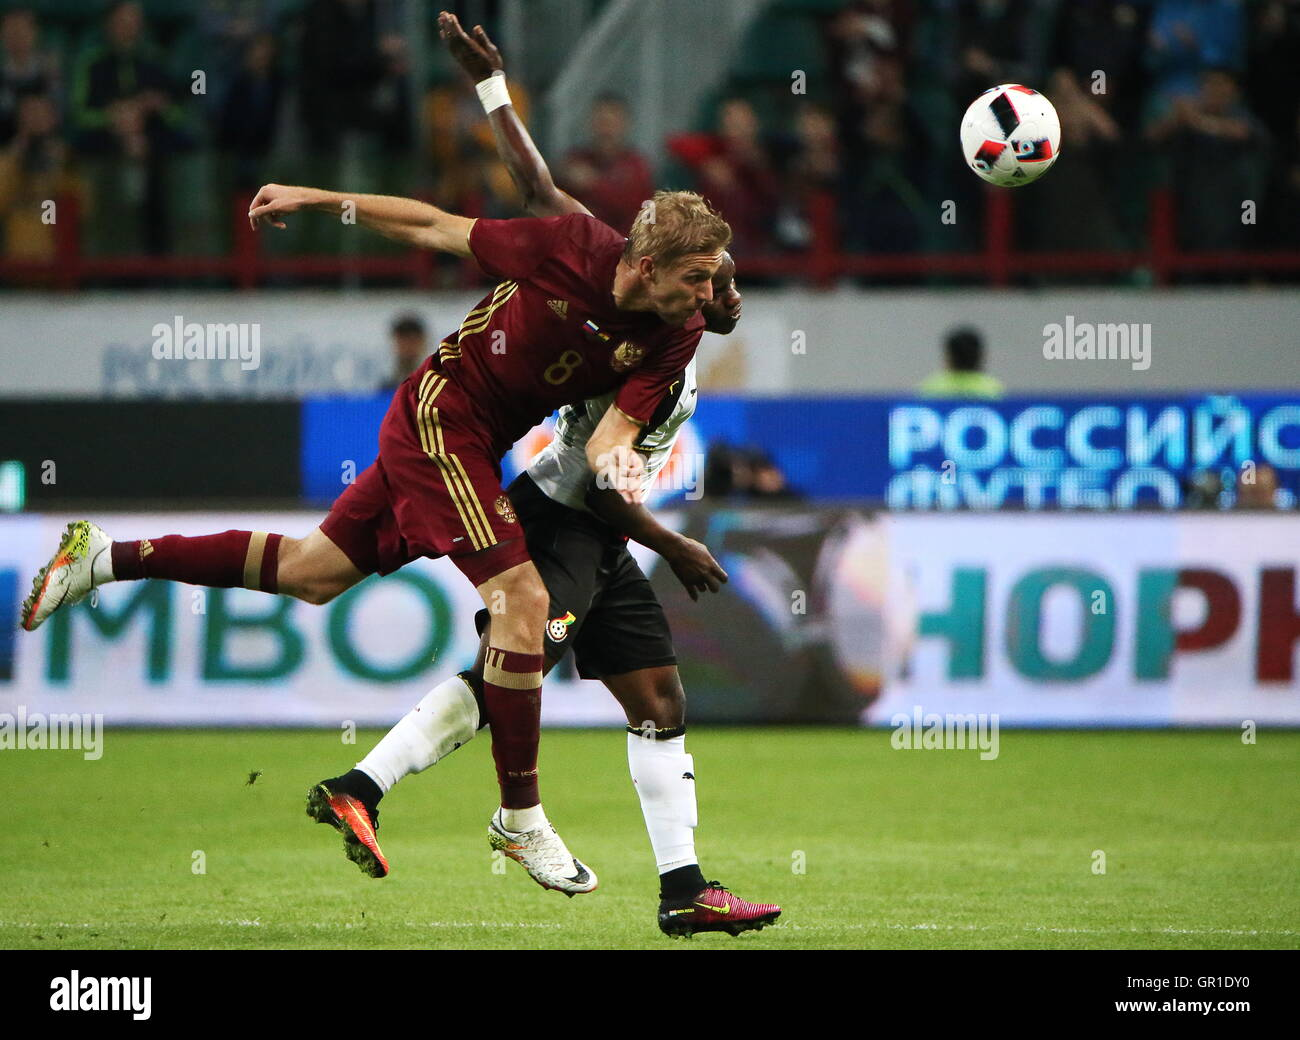 Moscow, Russia. 6th September, 2016. Russia's Yuri Gazinsky (L) and Ghana's Frank Acheampong fight for the - Stock Image